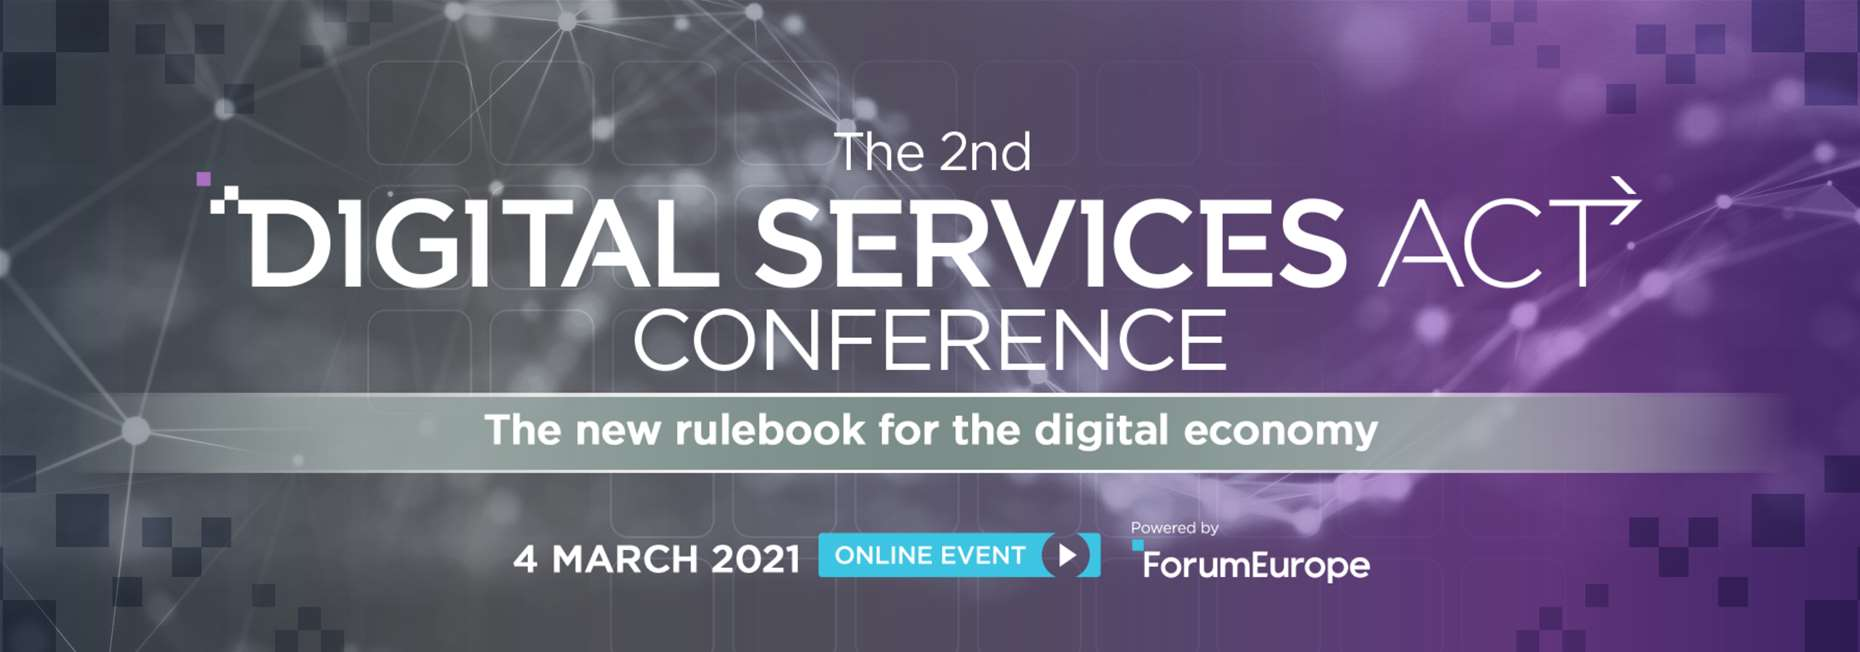 The 2nd Digital Services Act Conference